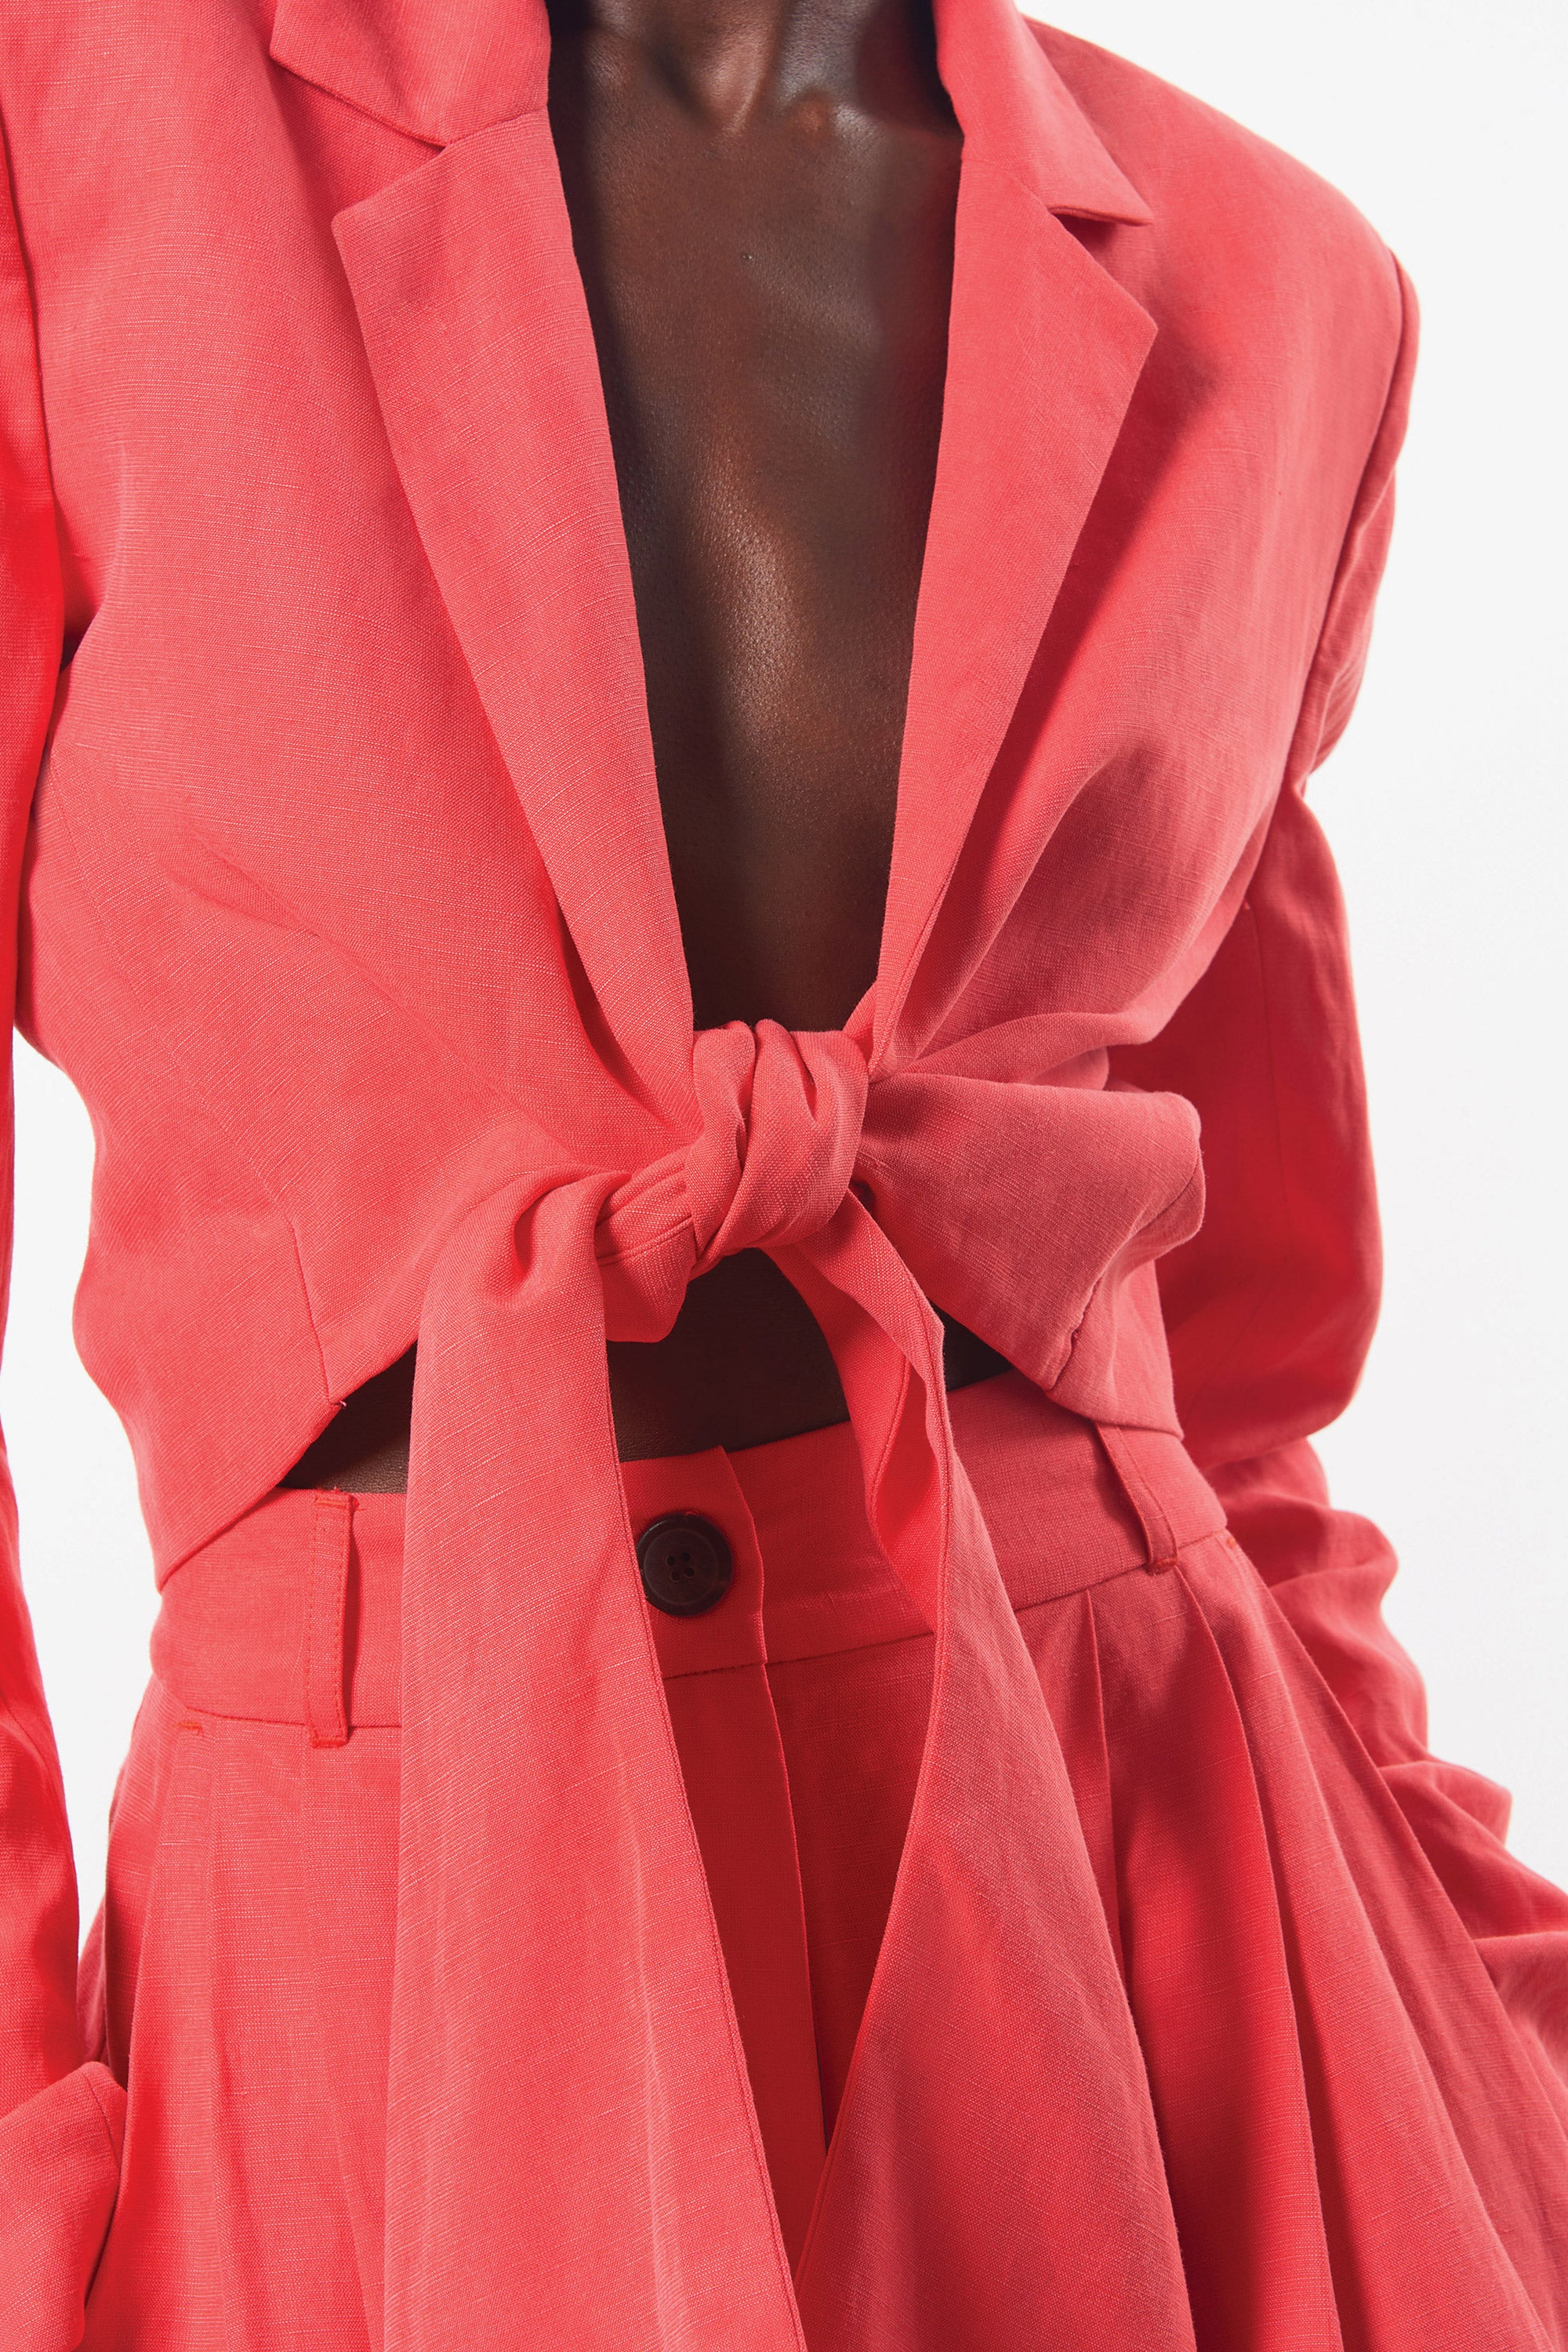 Mara Hoffman Red Catalina Jacket in Tencel Lyocell (front tie detail)